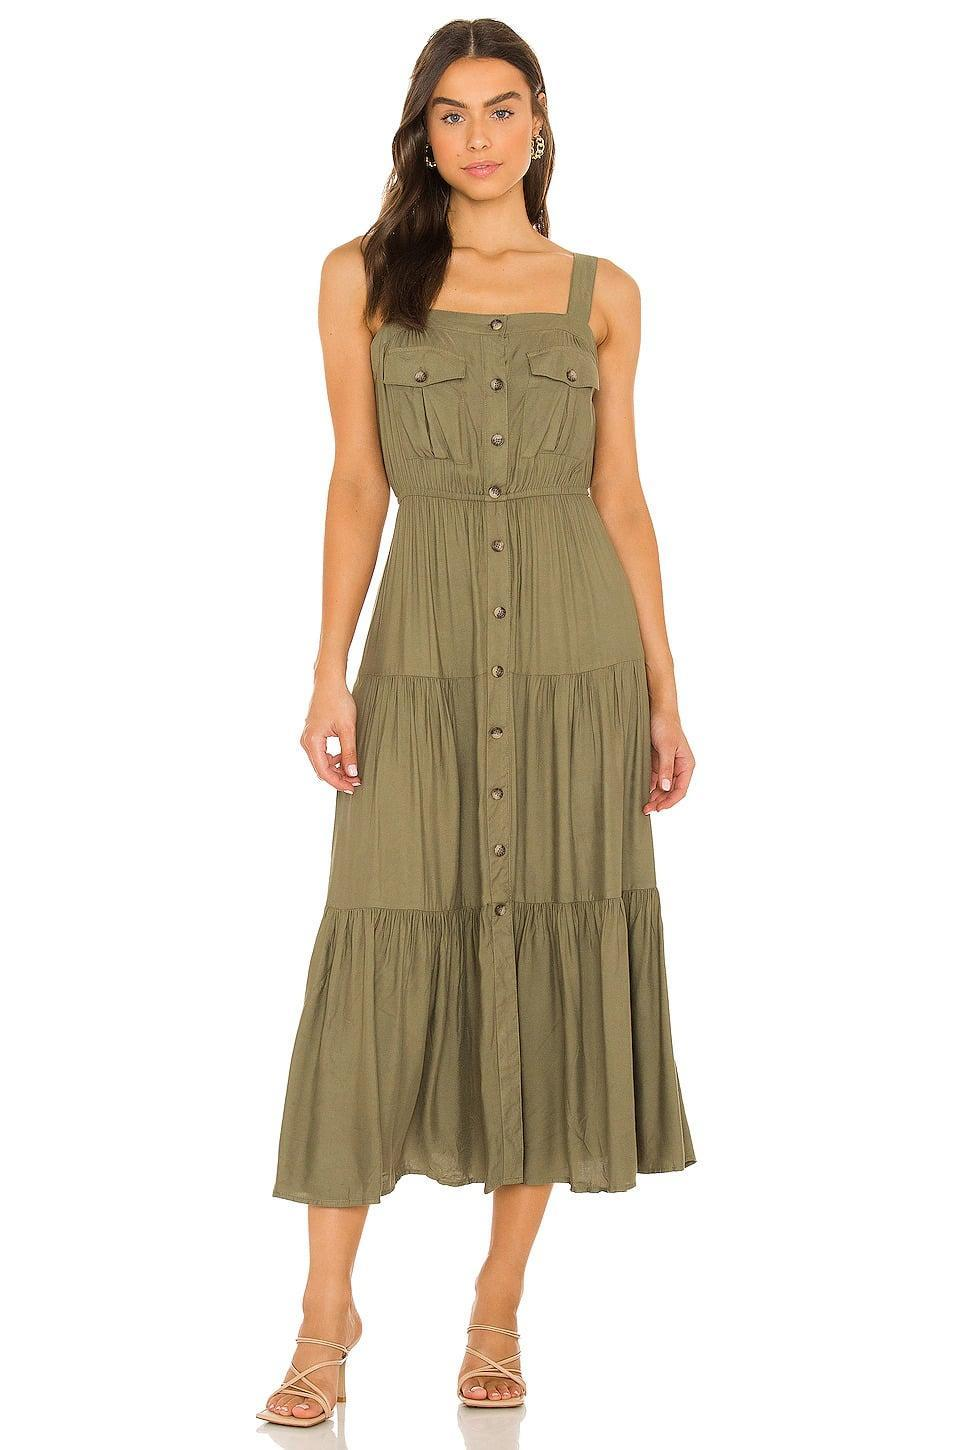 <p>Not only is the mossy green color such a vibe for fall, we're in love with the silhouette of this <span>BB Dakota by Steve Madden Field Trip Dress in Mossy Green</span> ($109). It's flowy, casual, and perfect for those fall foliage photoshoots.</p>